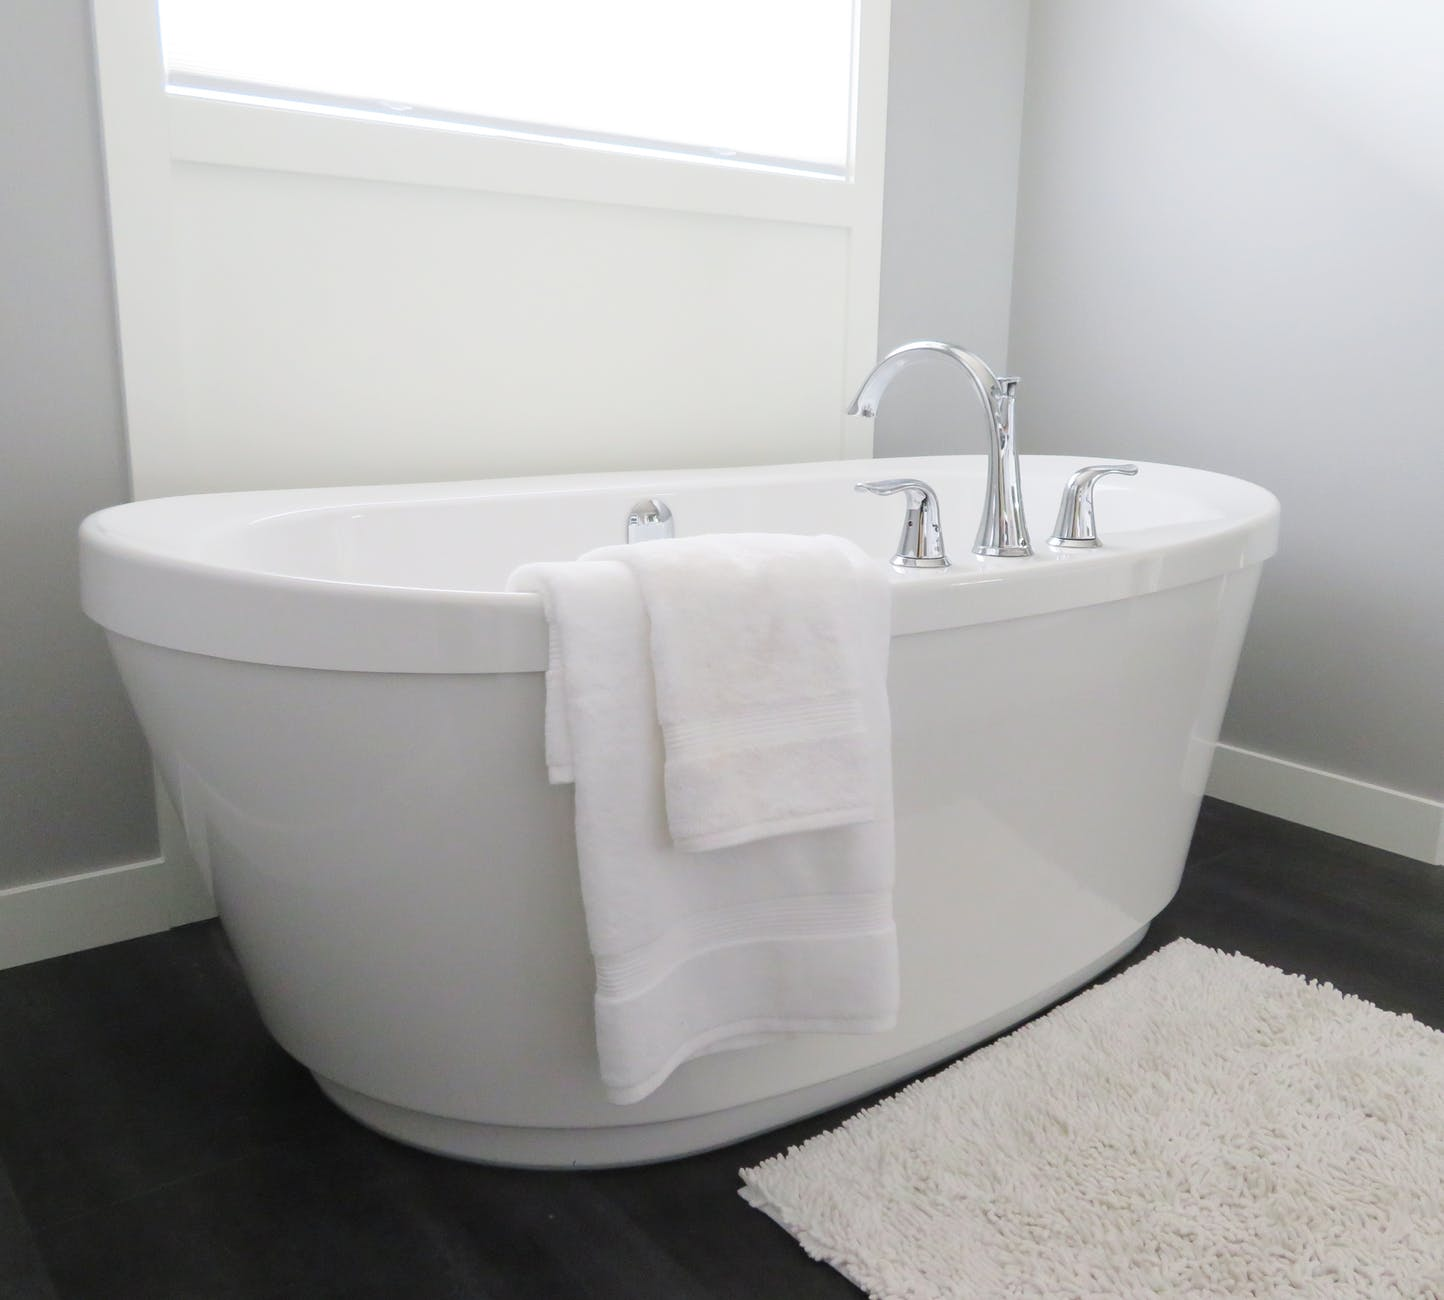 Bathtub Refinishing: 4 Things You Should Know